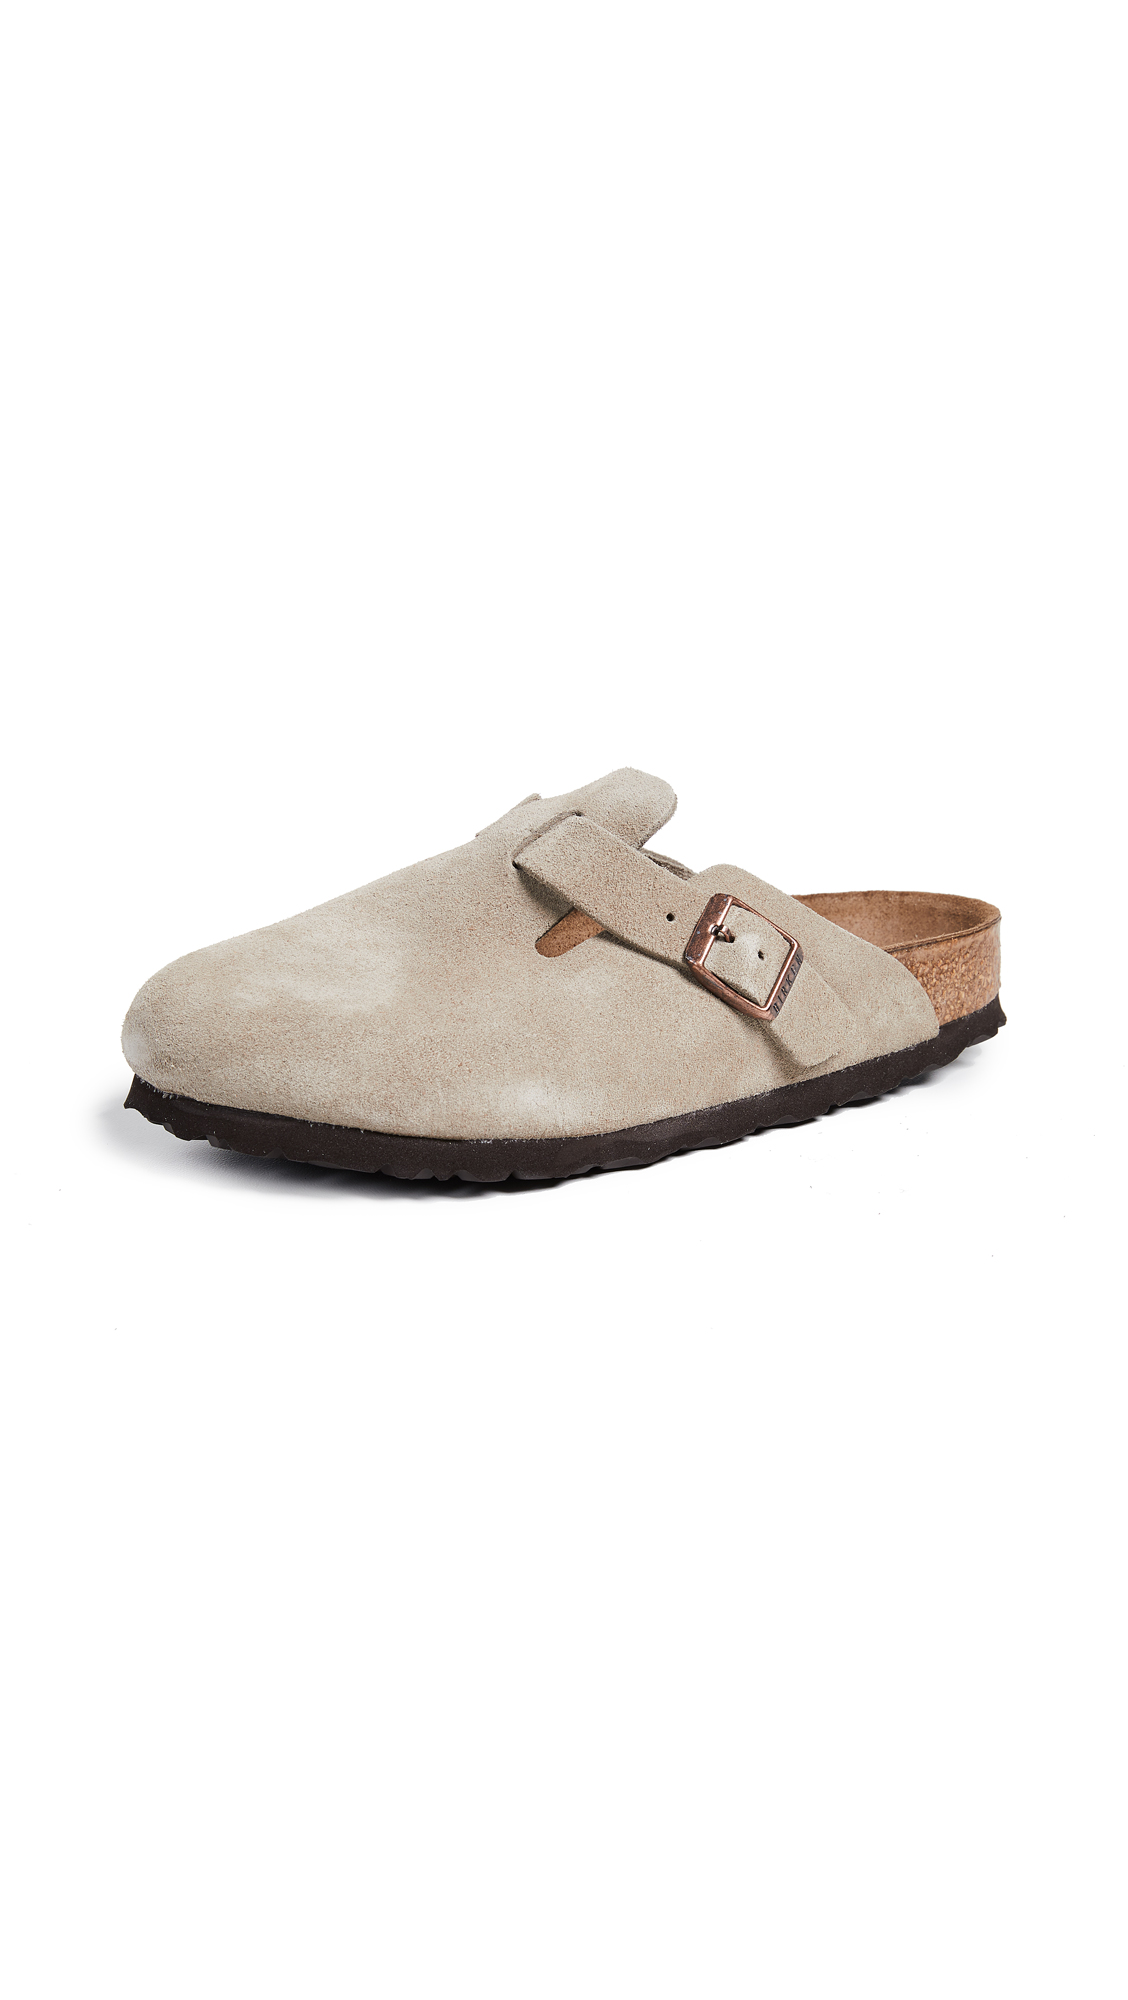 Birkenstock Boston SFB Clogs - Taupe